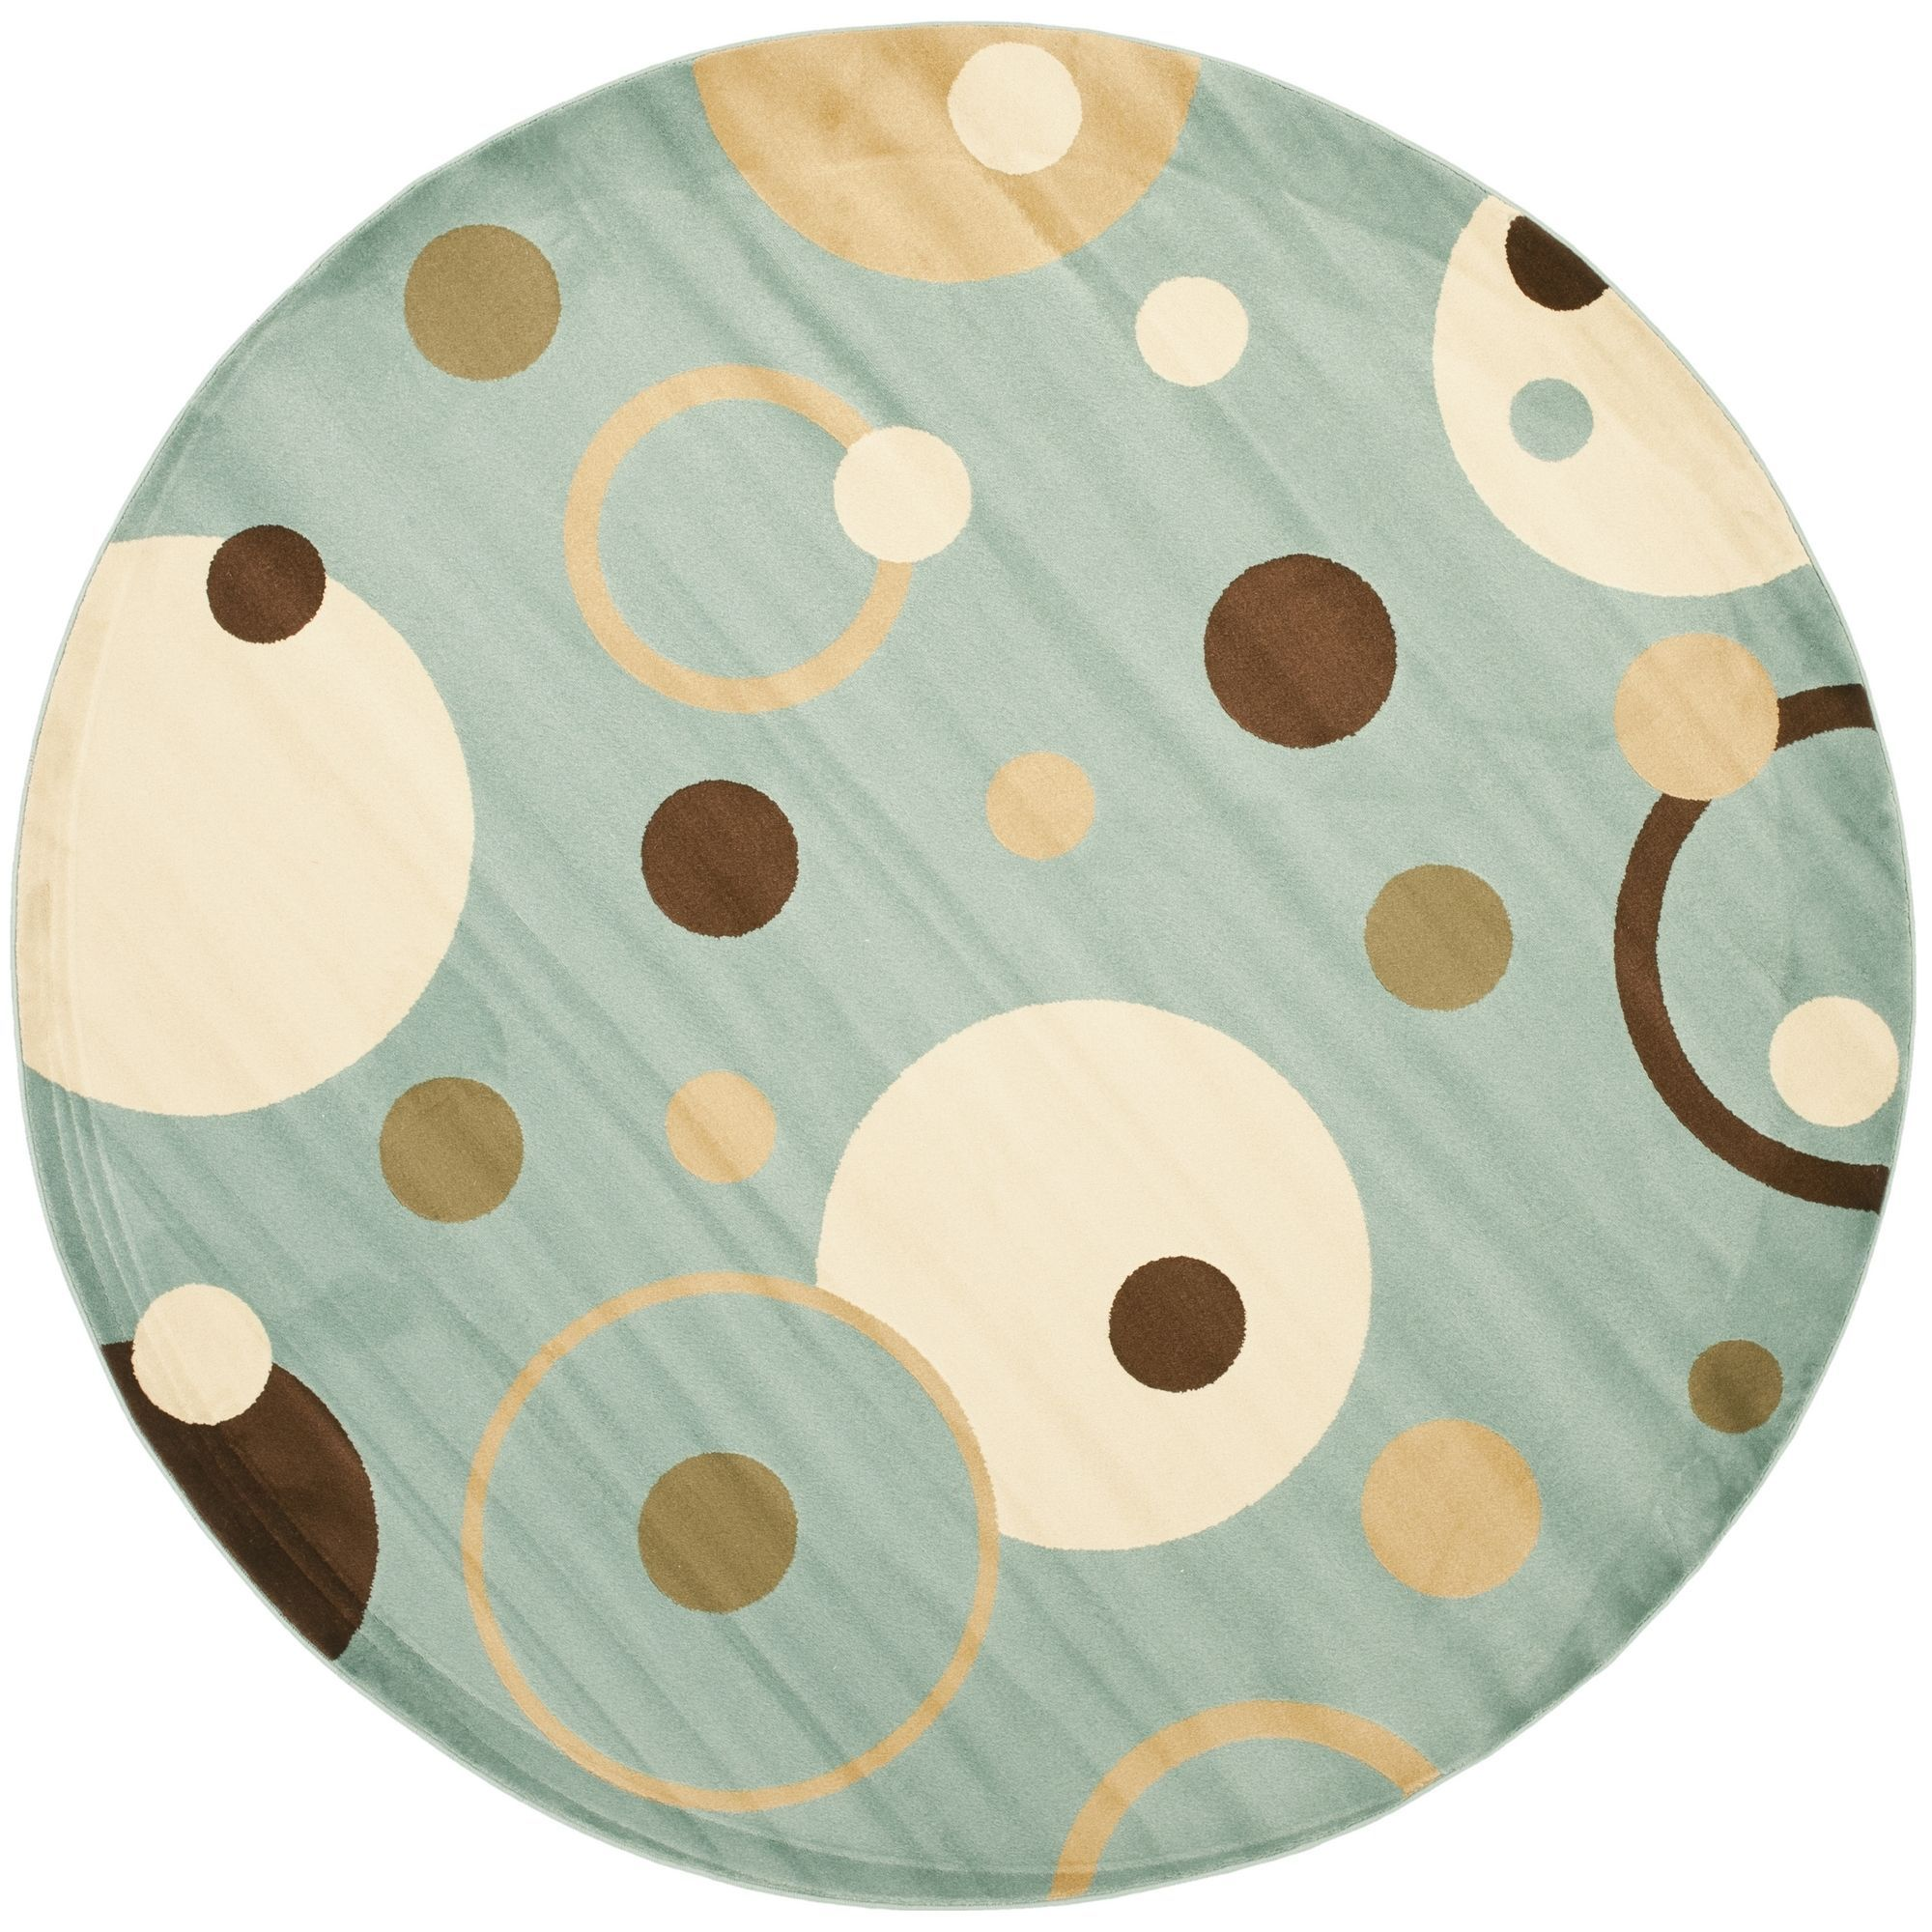 Safavieh Porcello Modern Cosmos Blue/ Multi Rug (5' Round) (PRL6851-6591-5R), Size 5' x 5' (Olefin, Abstract)